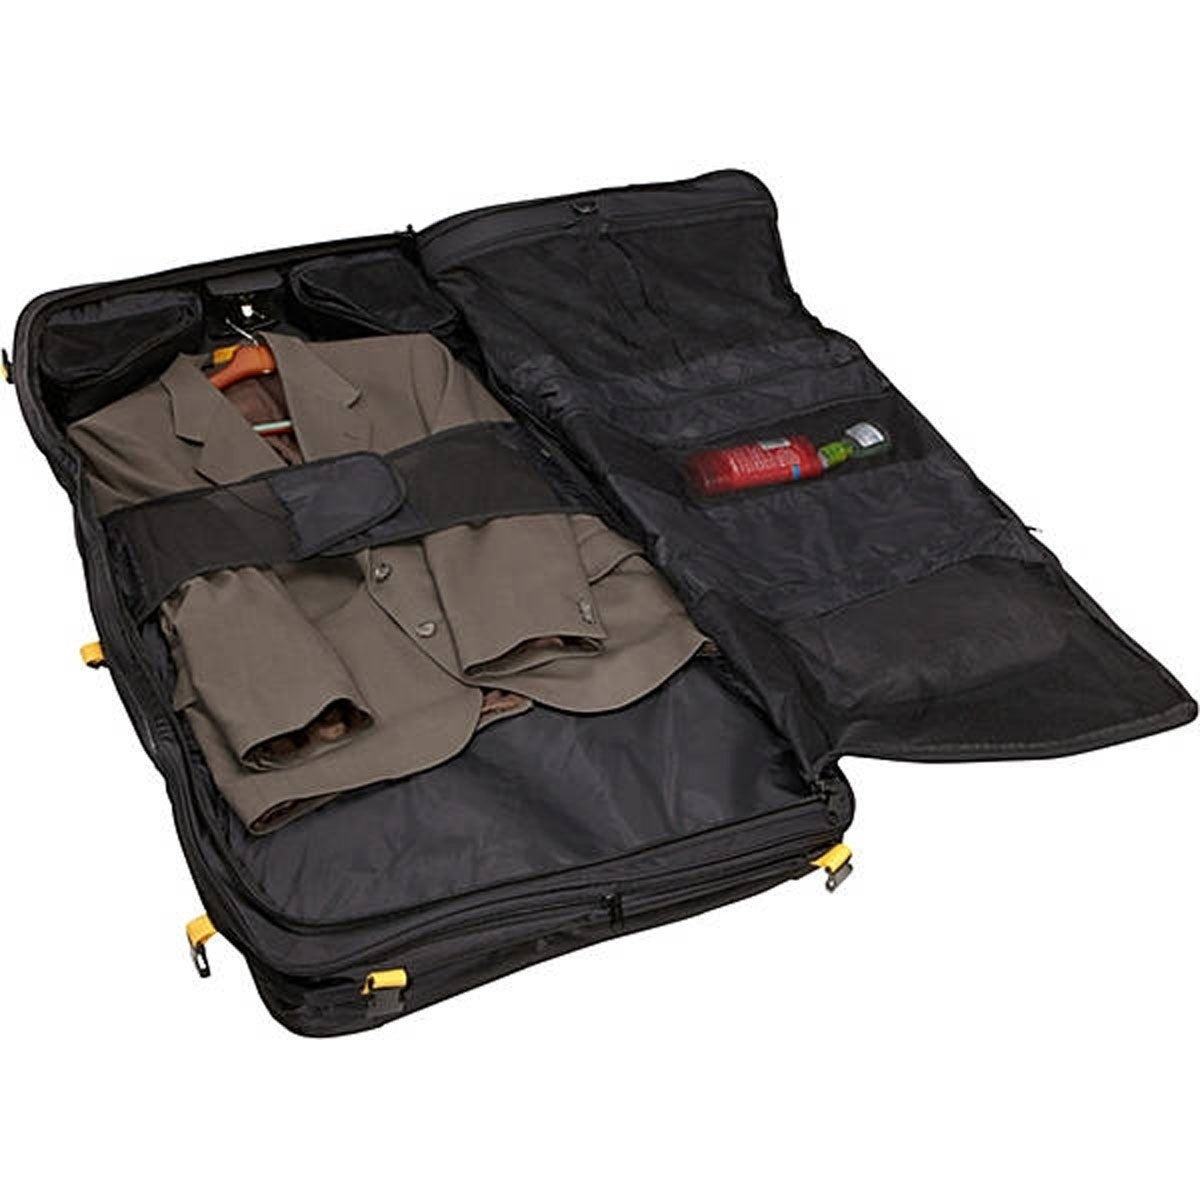 A Saks E X P N D B L Deluxe Tri Fold Carry On Garment Bag Free Shipping Today 7440427